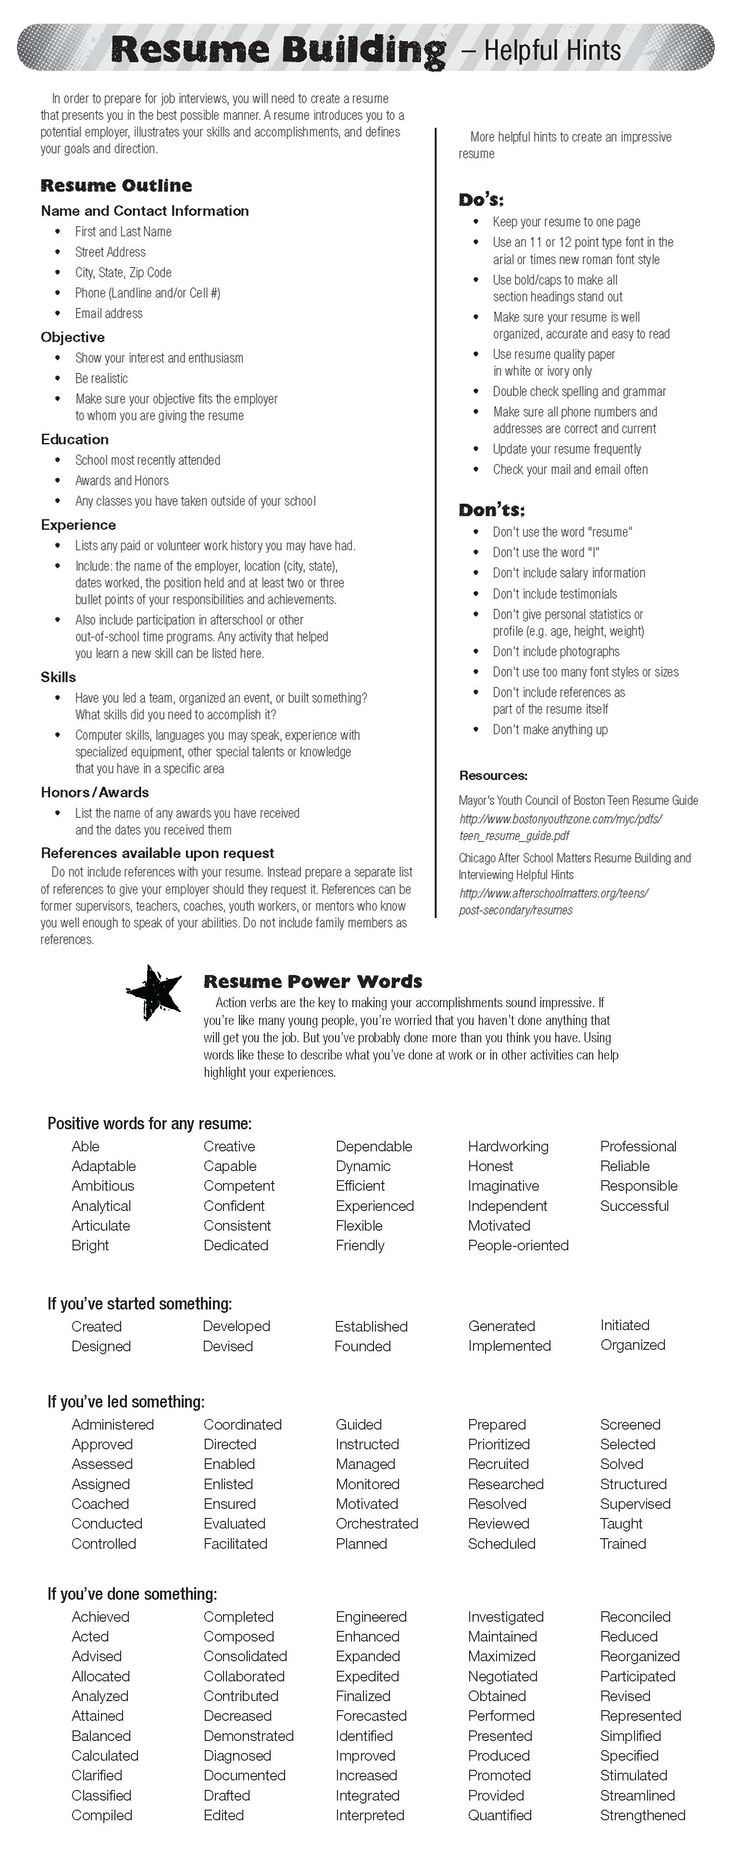 Opposenewapstandardsus  Mesmerizing  Ideas About Resume On Pinterest  Cv Format Resume Cv And  With Interesting  Ideas About Resume On Pinterest  Cv Format Resume Cv And Resume Templates With Enchanting Astronaut Resume Also Network Security Resume In Addition Thank You For Forwarding My Resume And Mph Resume As Well As Mechanical Engineer Resume Sample Additionally Cdl Truck Driver Resume From Pinterestcom With Opposenewapstandardsus  Interesting  Ideas About Resume On Pinterest  Cv Format Resume Cv And  With Enchanting  Ideas About Resume On Pinterest  Cv Format Resume Cv And Resume Templates And Mesmerizing Astronaut Resume Also Network Security Resume In Addition Thank You For Forwarding My Resume From Pinterestcom